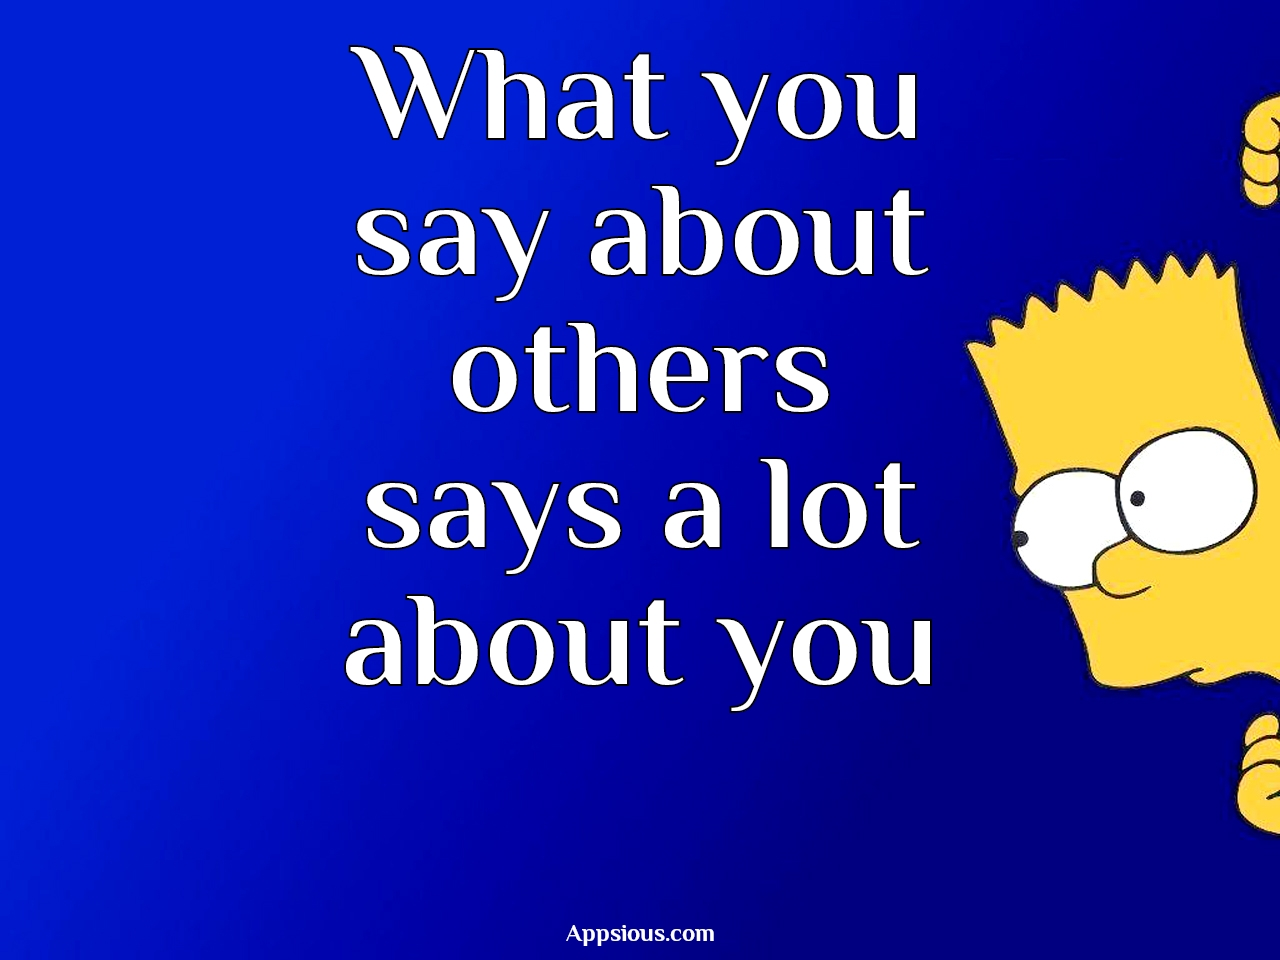 What you say about others says a lot about you